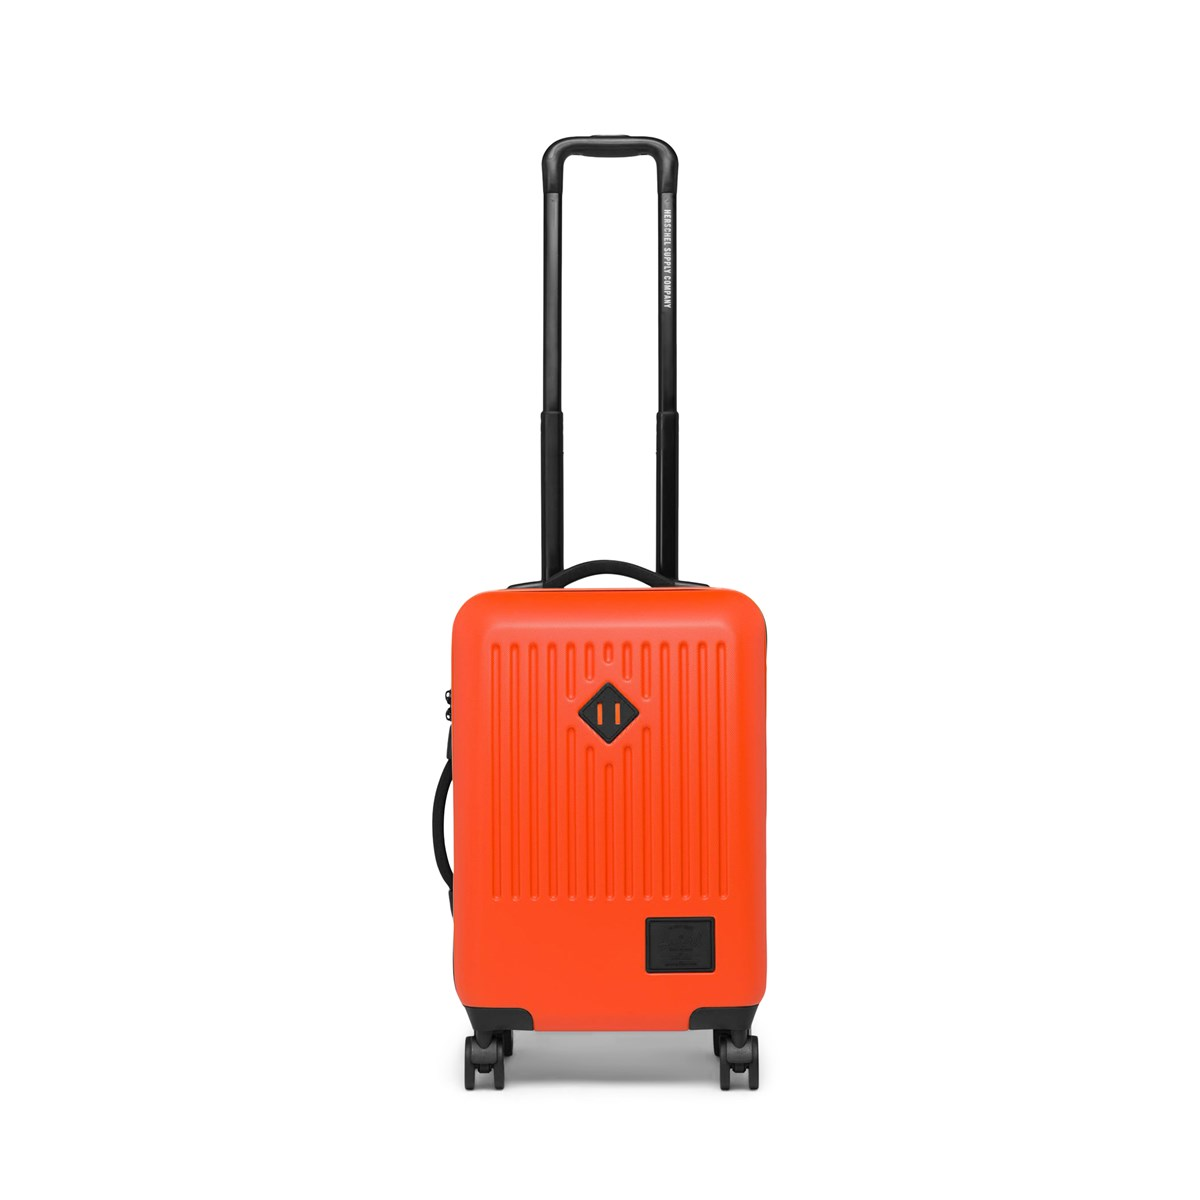 Trade Small Luggage in Orange